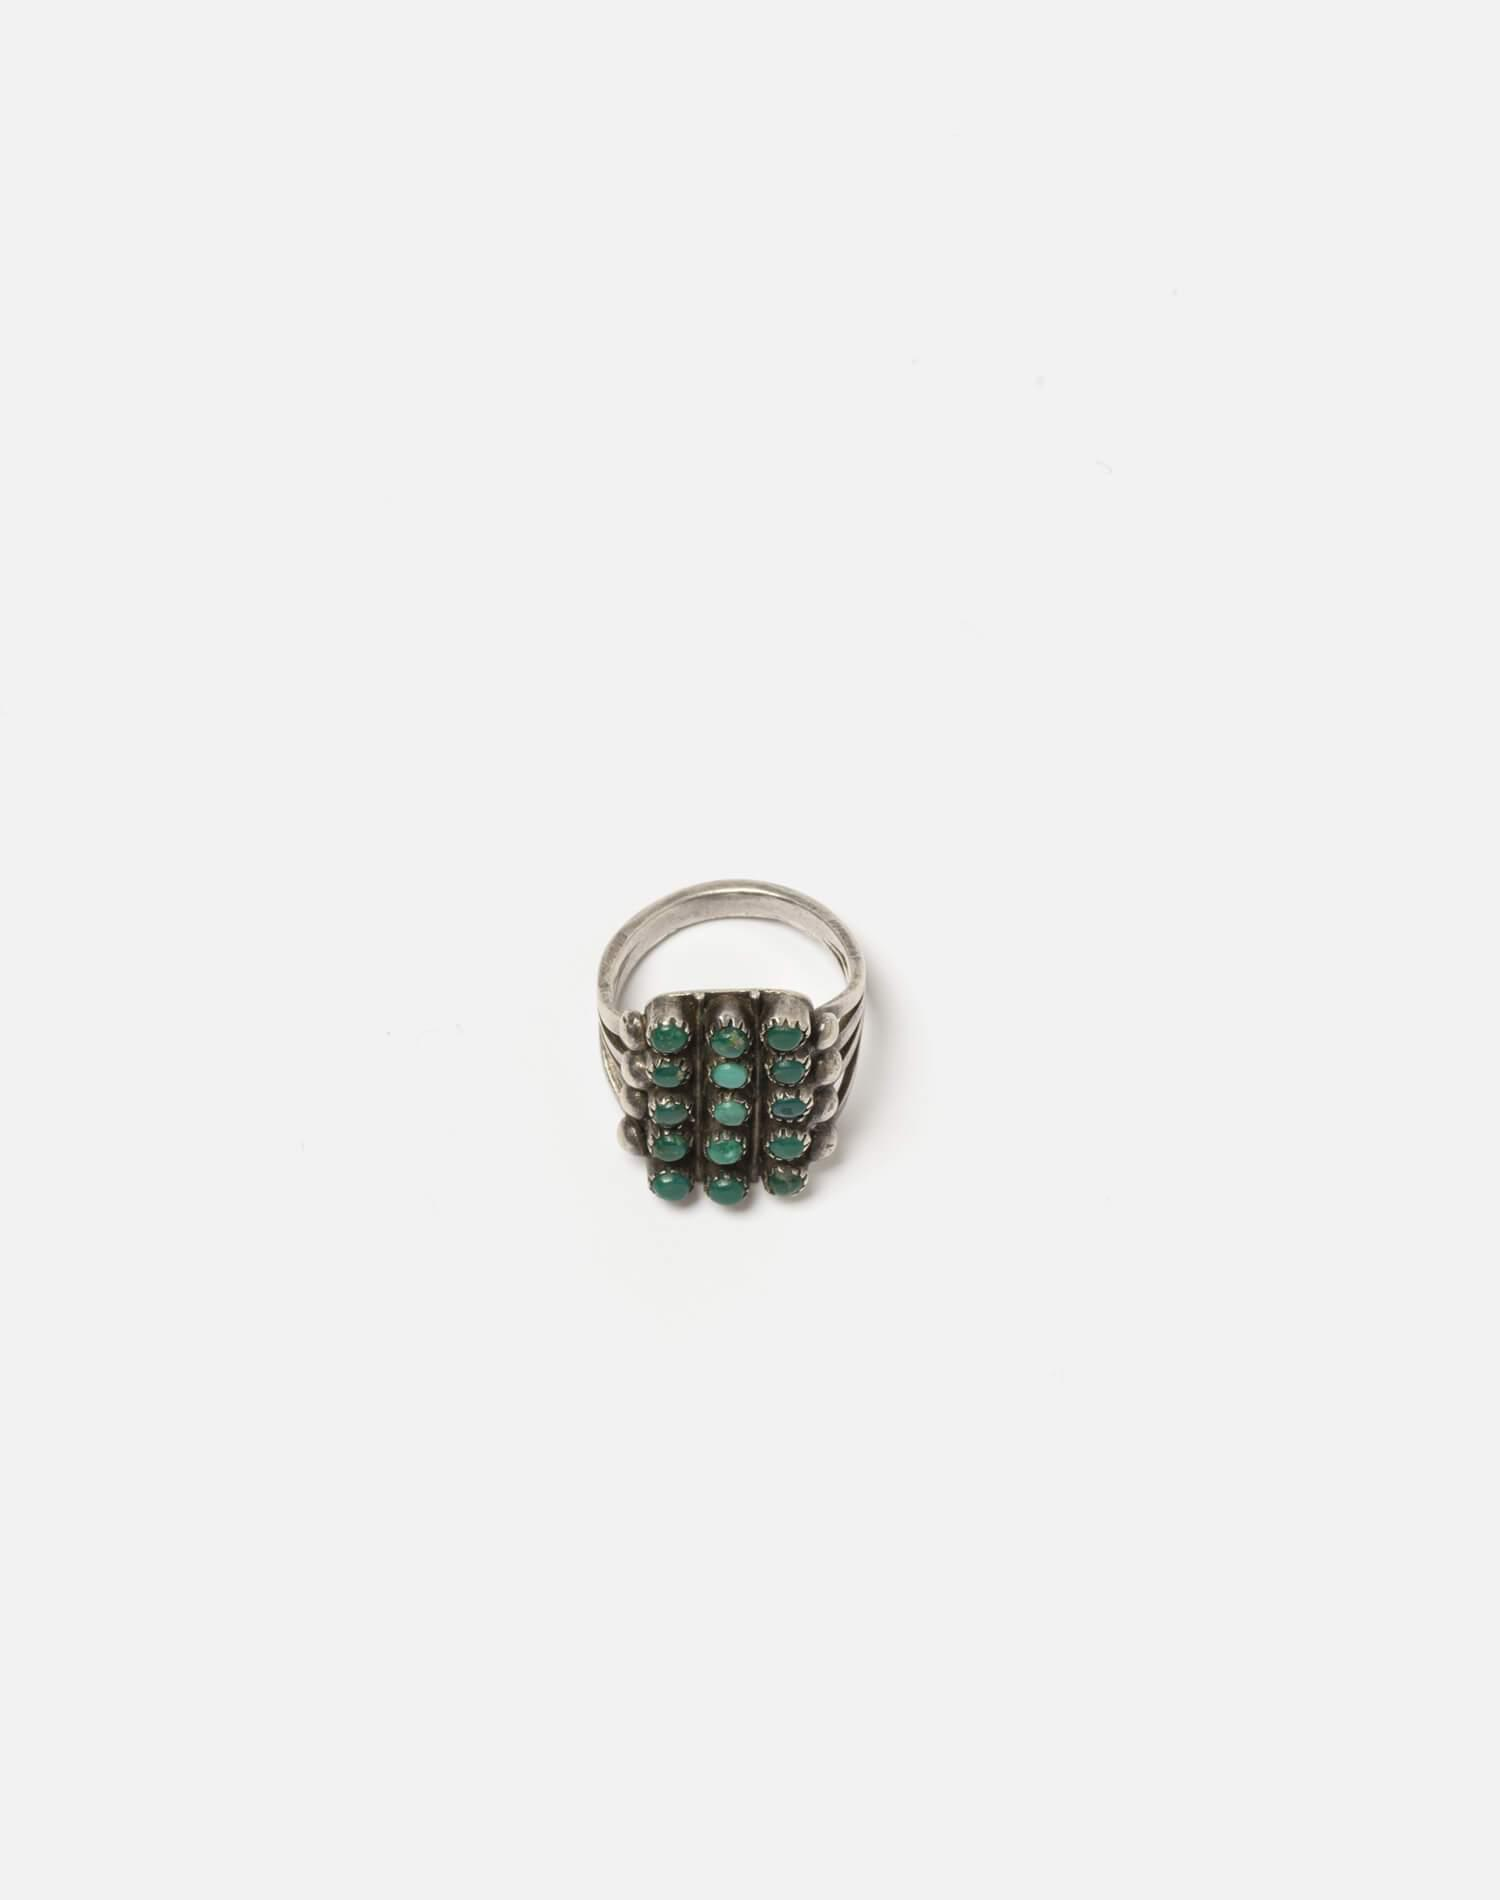 40s Zuni Spilt Shank Sterling And Turquoise Stone Ring - #96 3